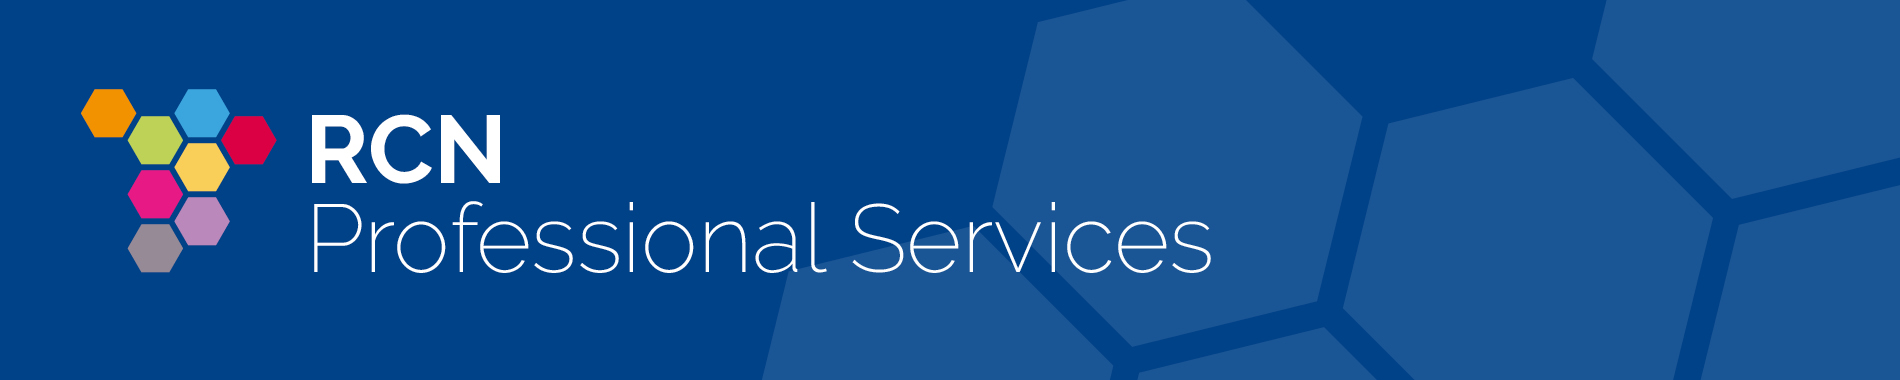 RCN Professional Services